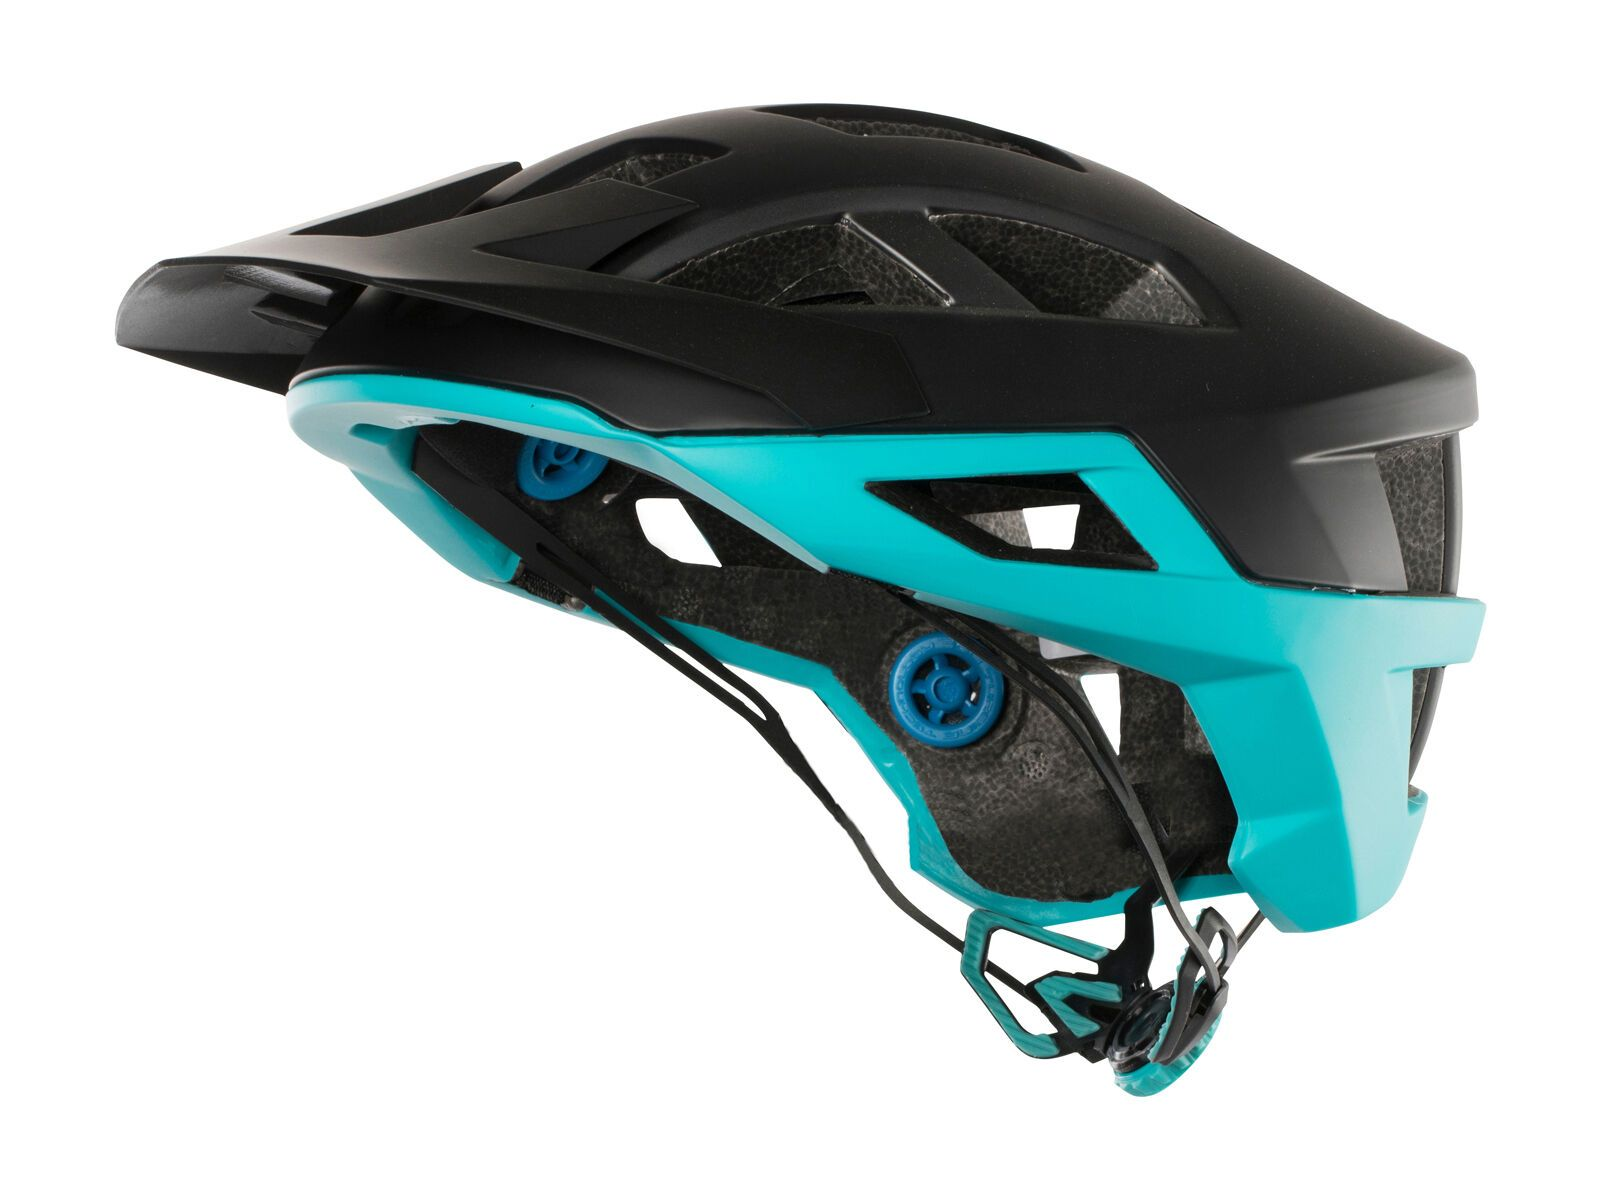 Leatt Helmet DBX 2.0 granite/teal S // 51-55 cm LE-HLT-8030-S-907-Granite-Teal